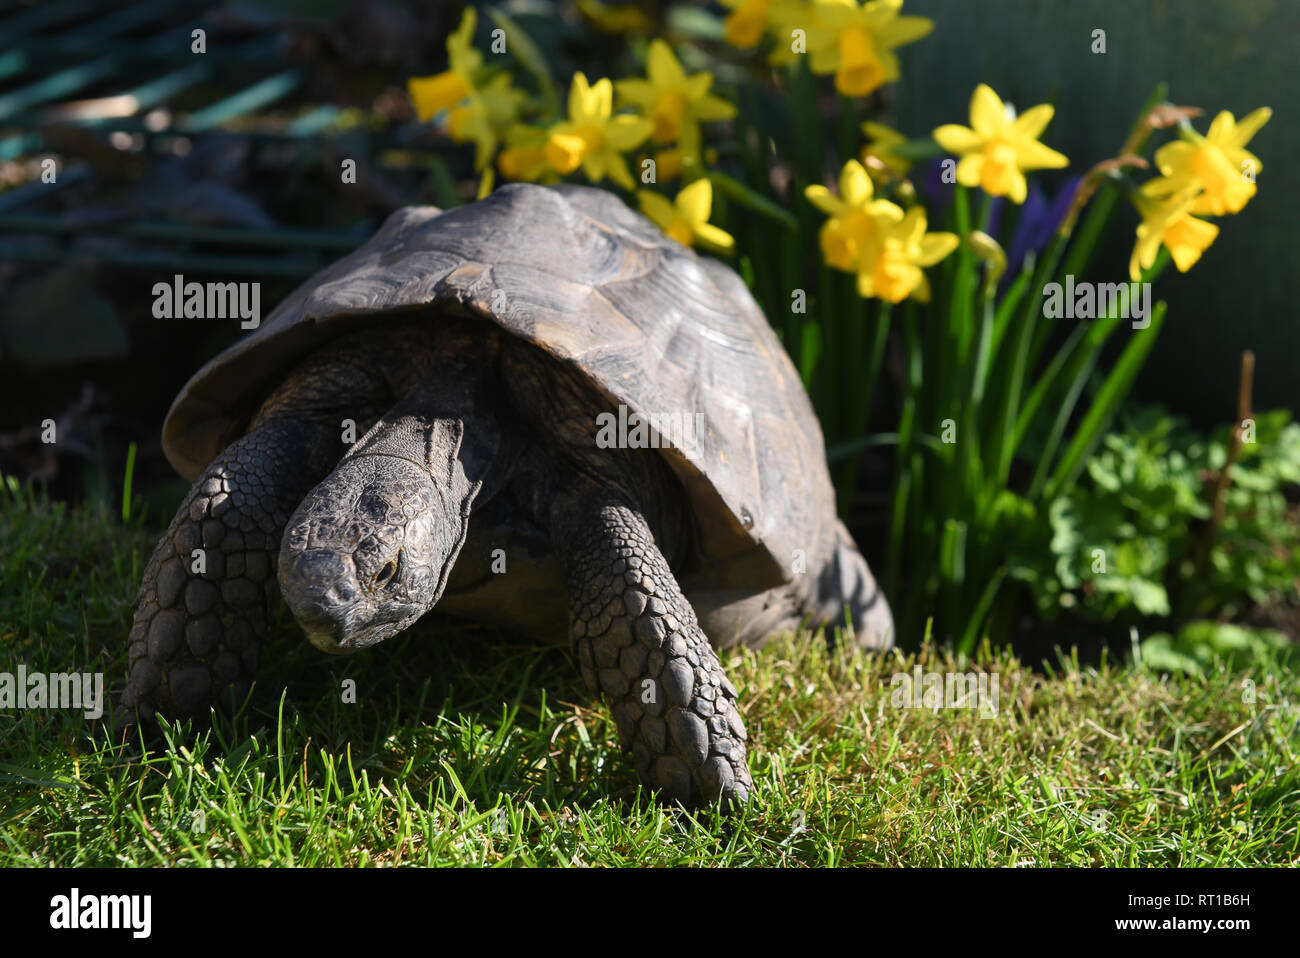 Telford, Shropshire. 27th Feb 2019. UK Weather: Early riser! The unseasonal hot weather woke this 35 year old pet tortoise a month early from his winter hibernation in Telford, Shropshire. The tortoise called 'Fred' self hibernates by burying himself underground in the garden in mid October and usually wakes at towards the end of March but with temperatures up to 19 degrees he could obviously smell spring in the air. Credit: David Bagnall/Alamy Live News - Stock Image